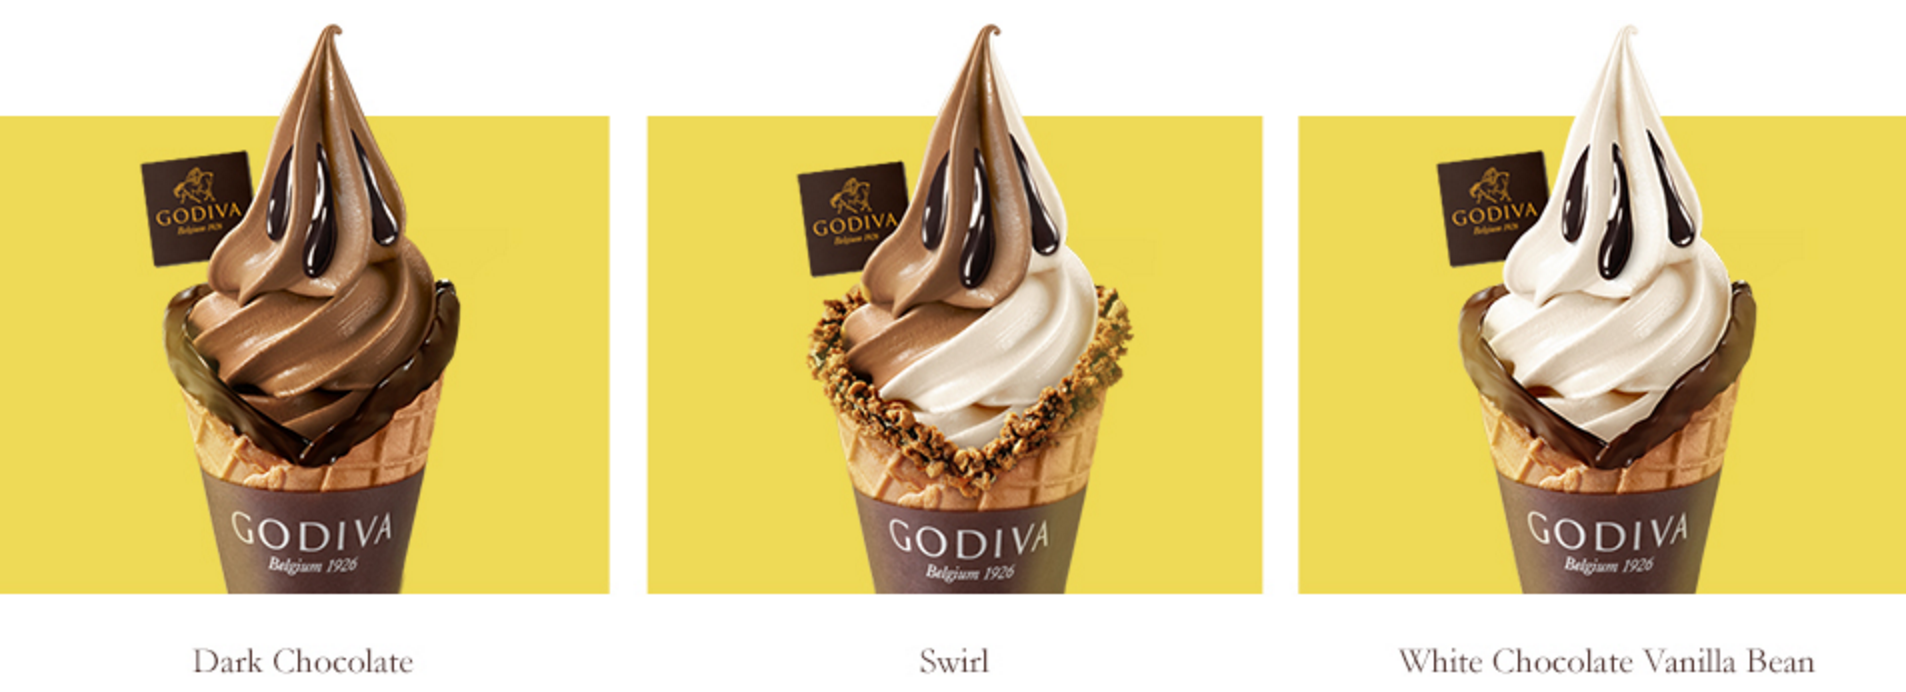 Godiva Chocolate Cake Price